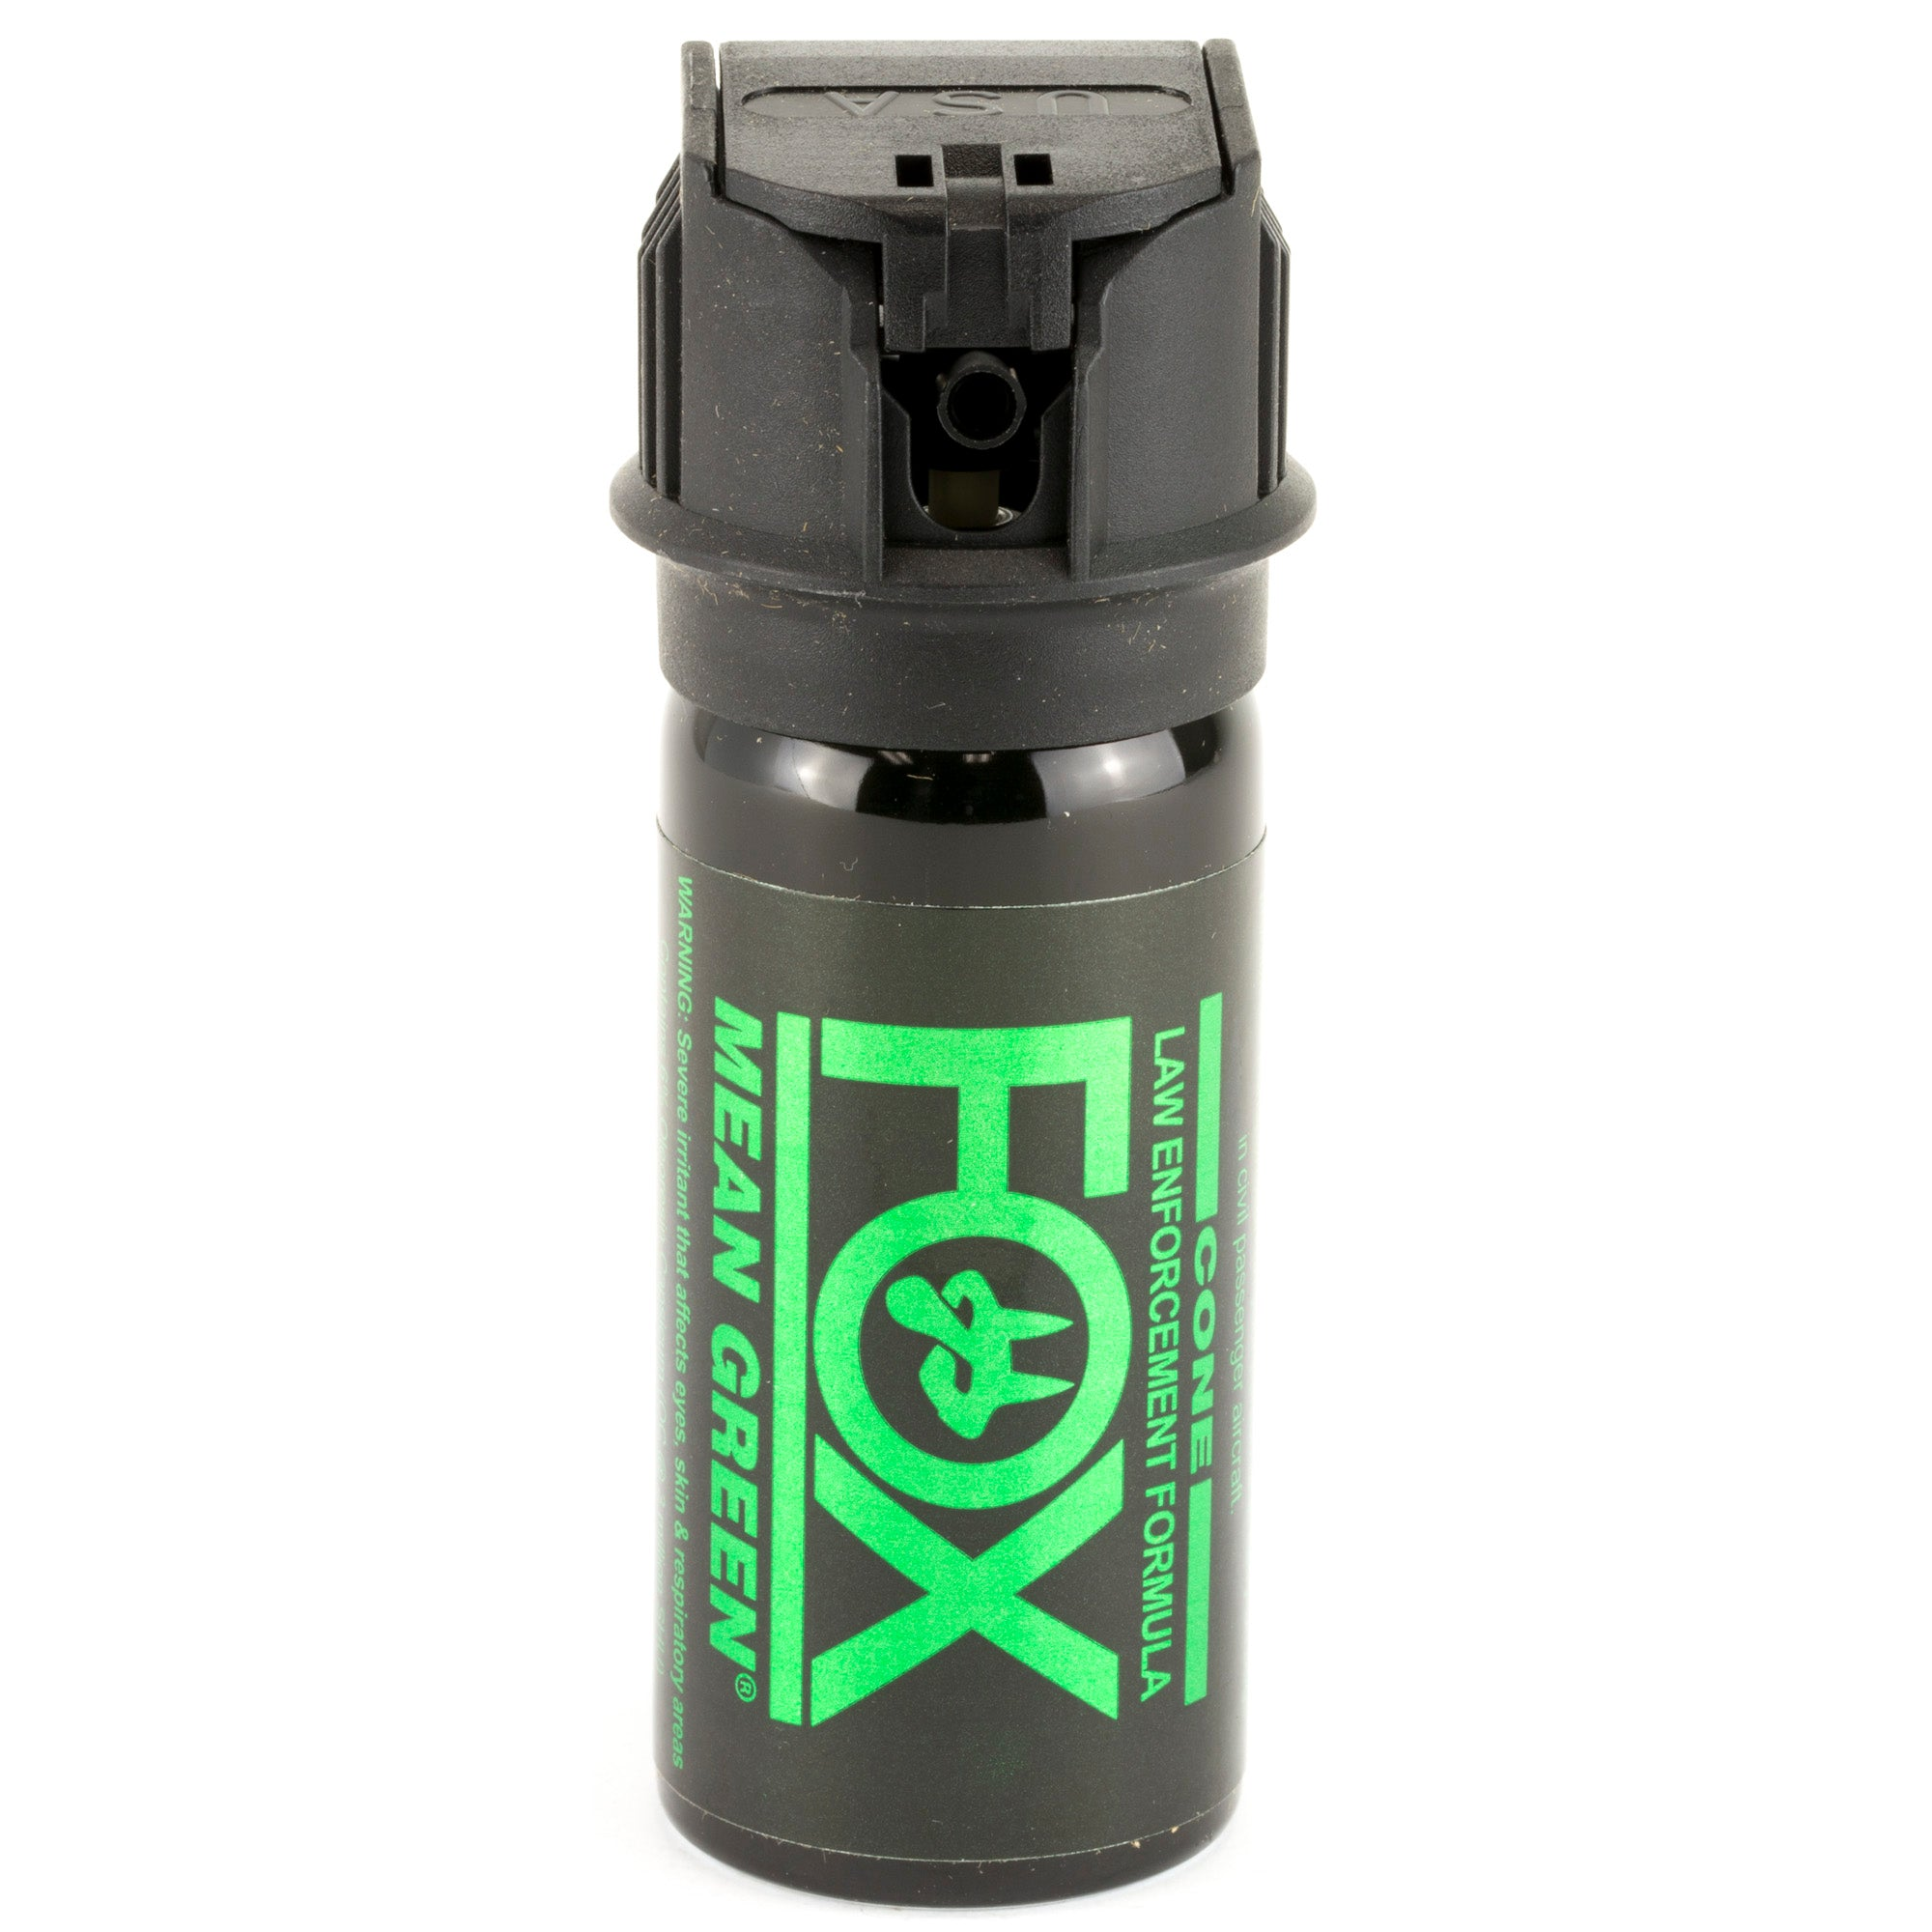 PS Fox Labs Mean Green Tactical Police 1.5oz Flip-Top Fog Pattern Pepper Spray